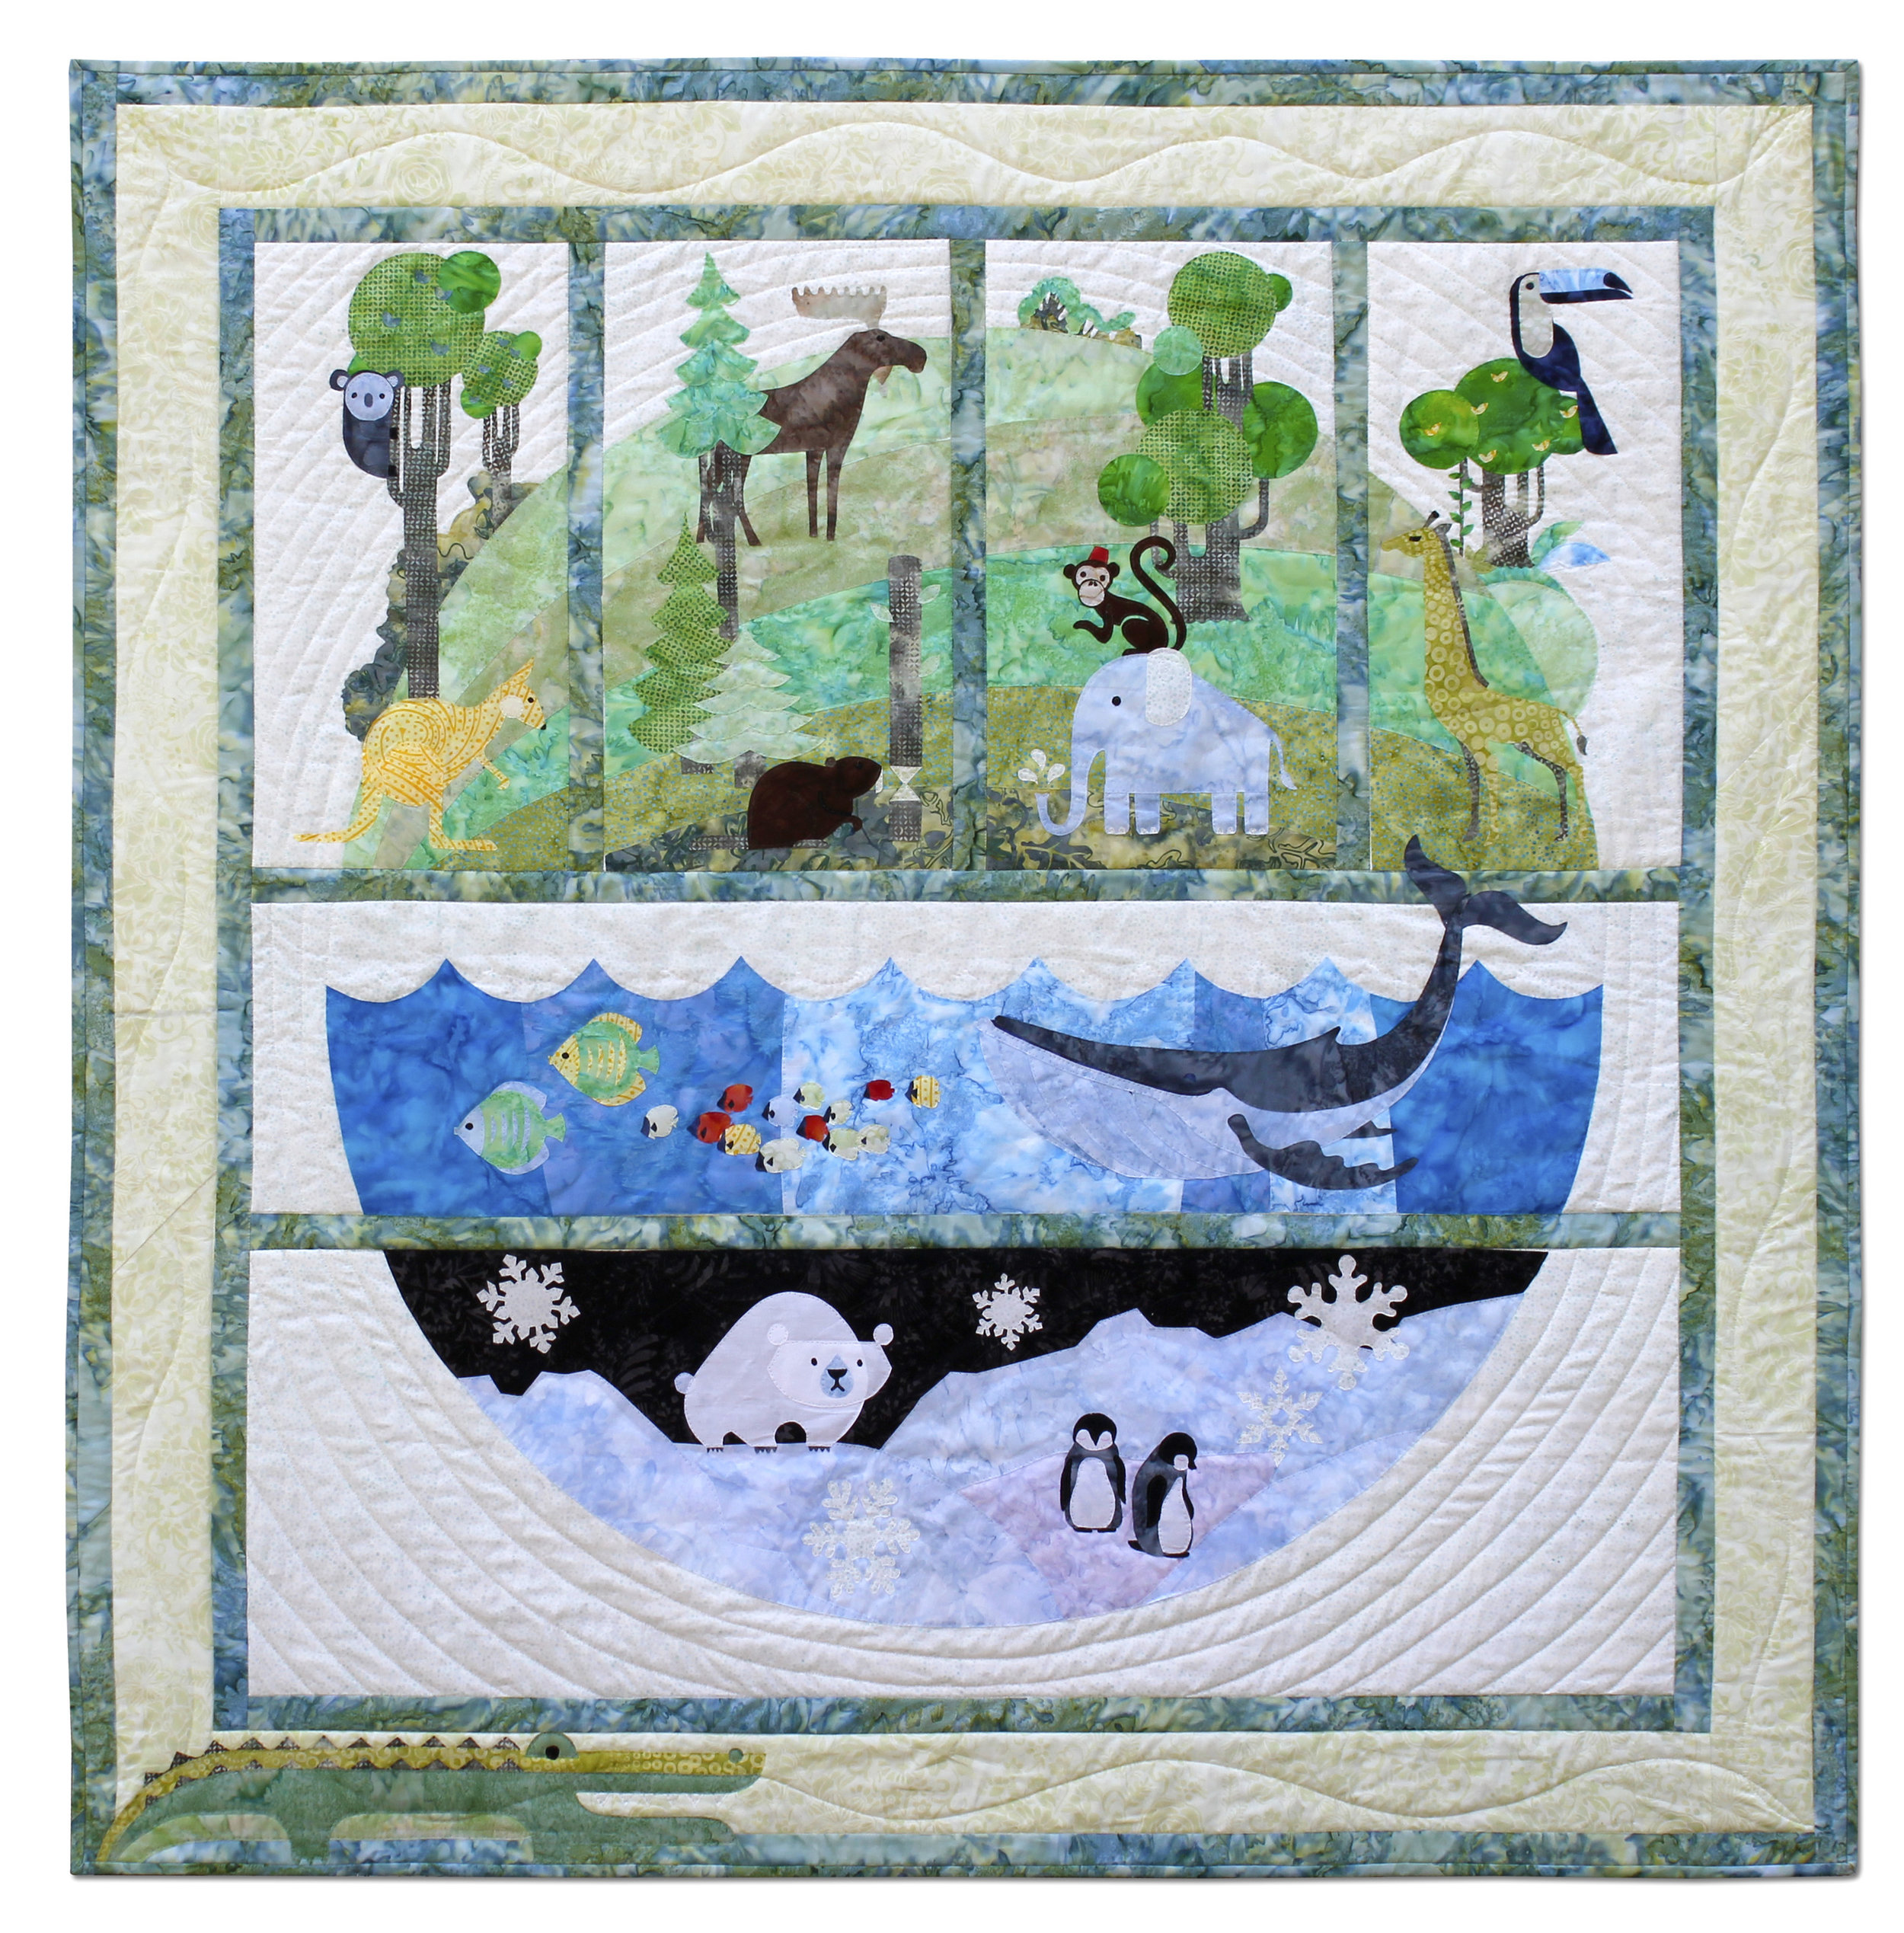 Keith's version of the One World quilt